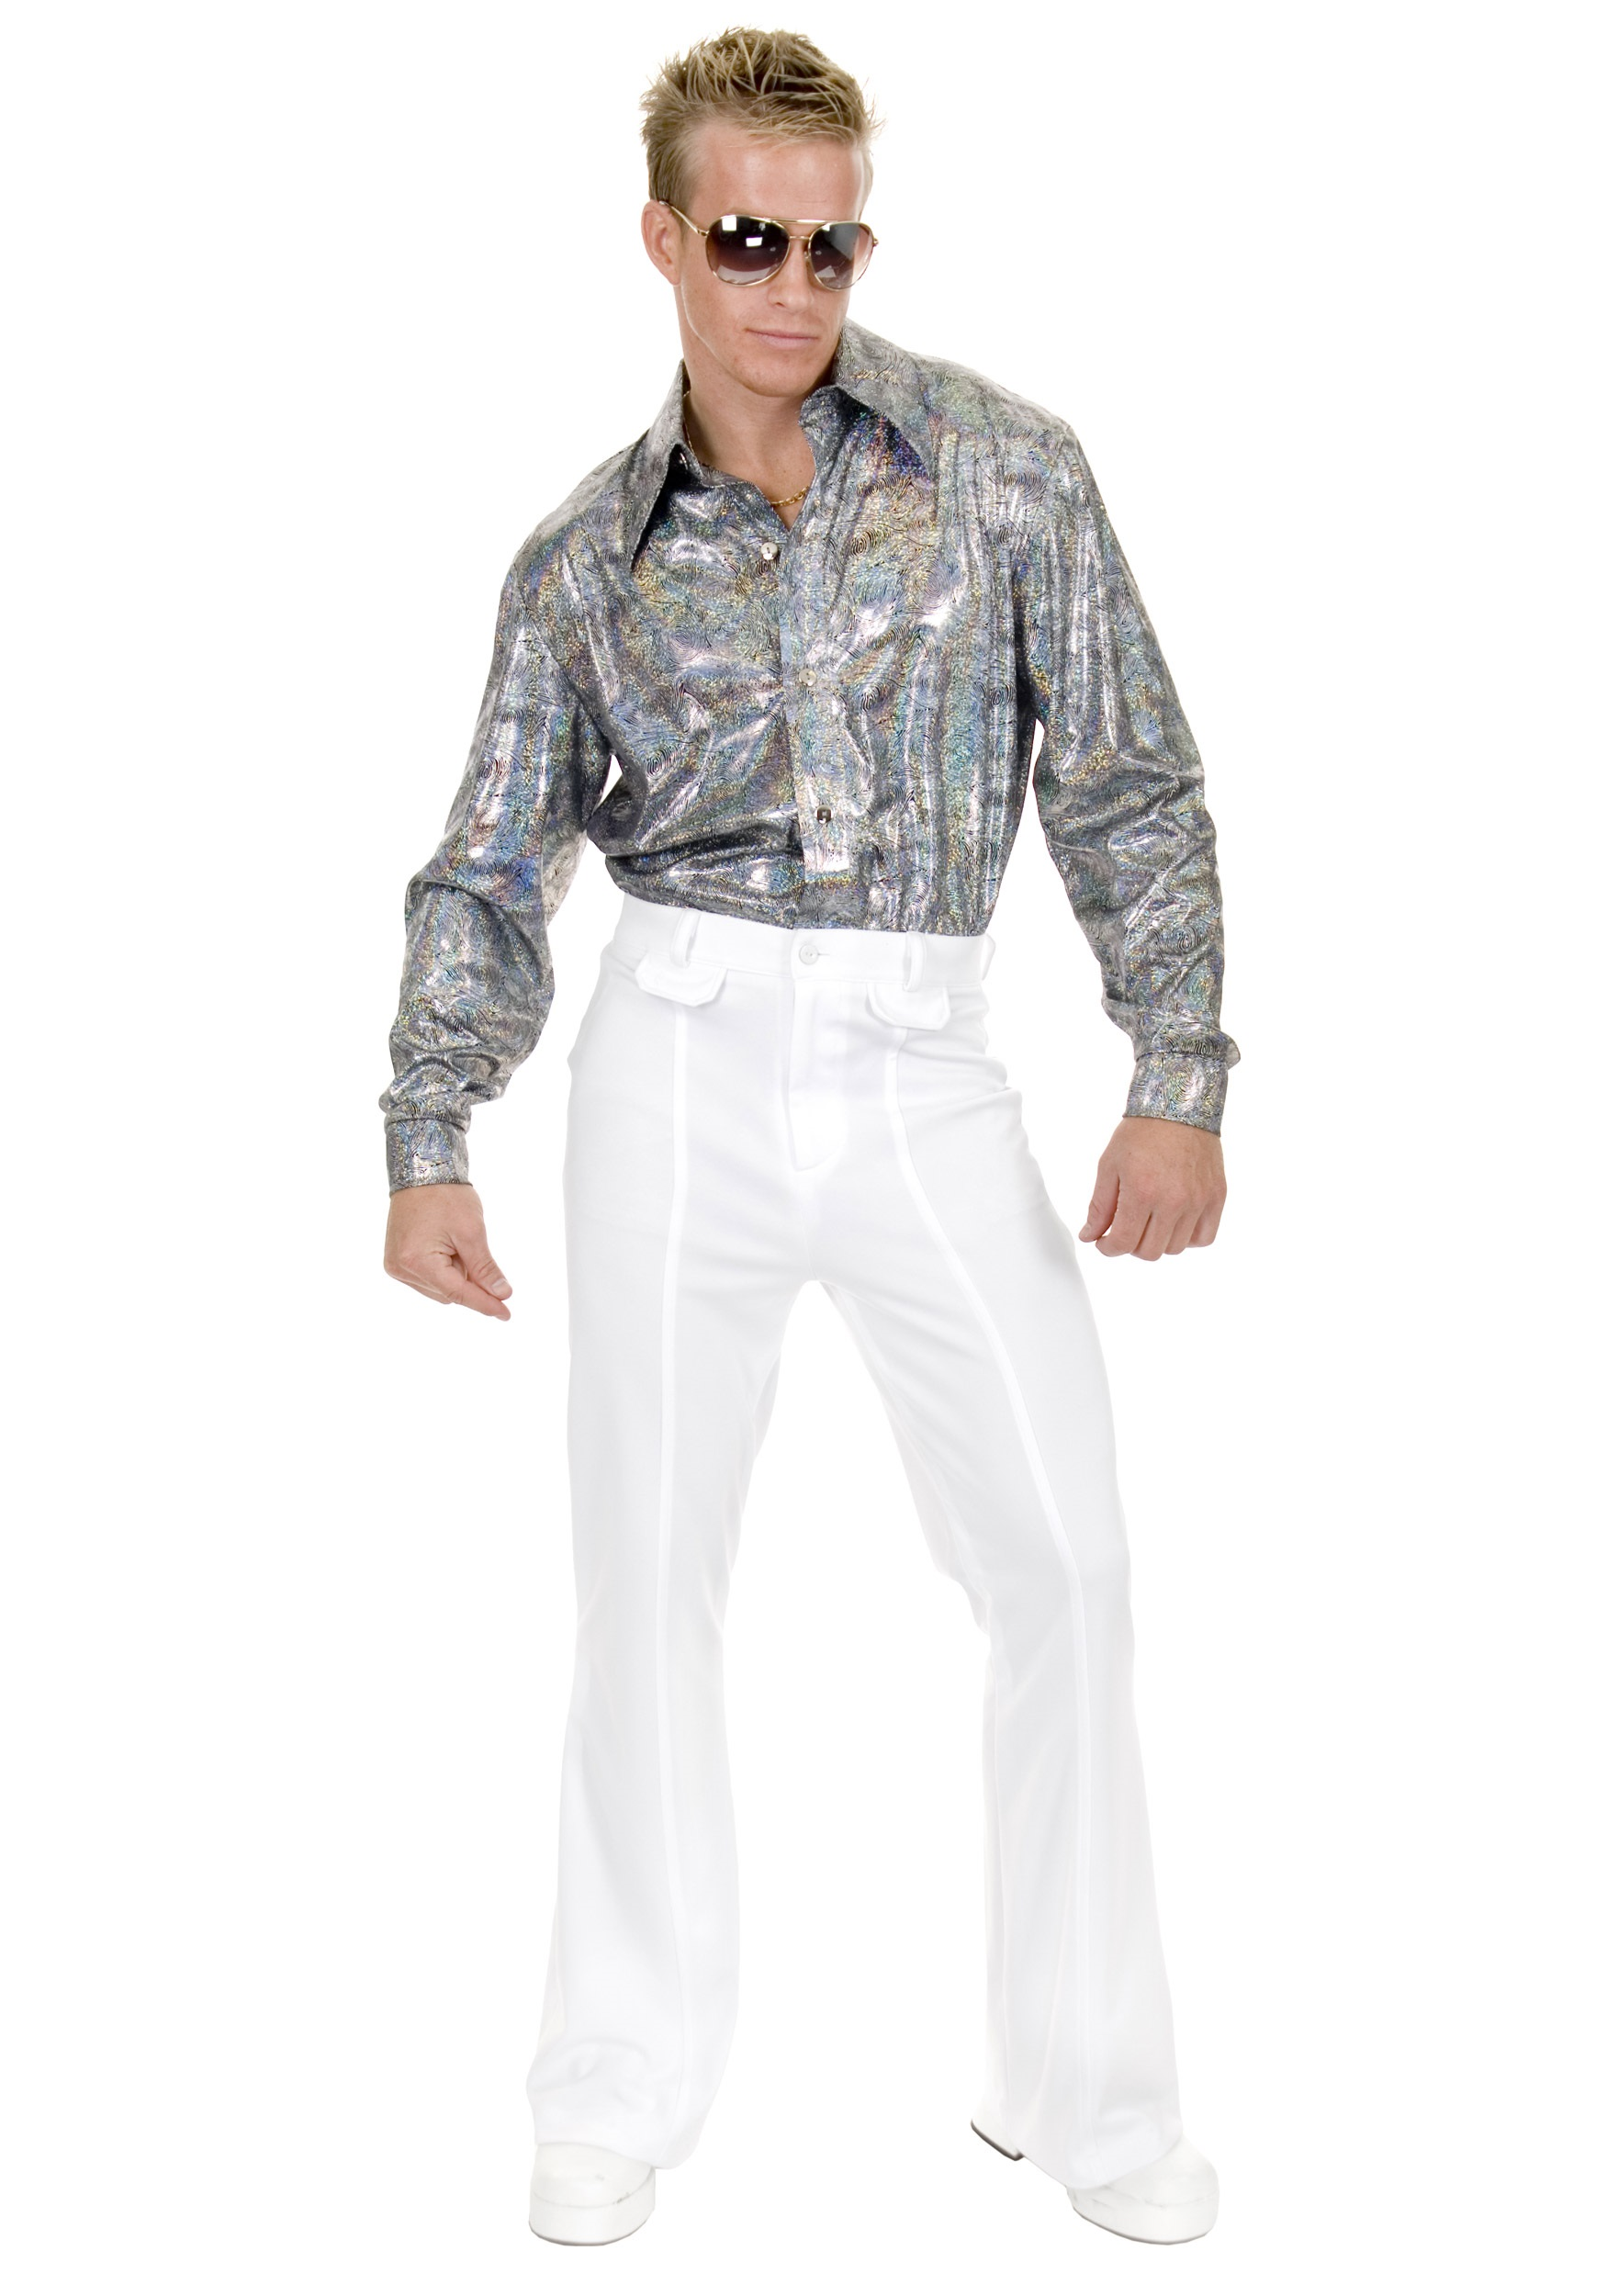 Disco Dance Costumes & Dresses for Adults - HalloweenCostumes.com